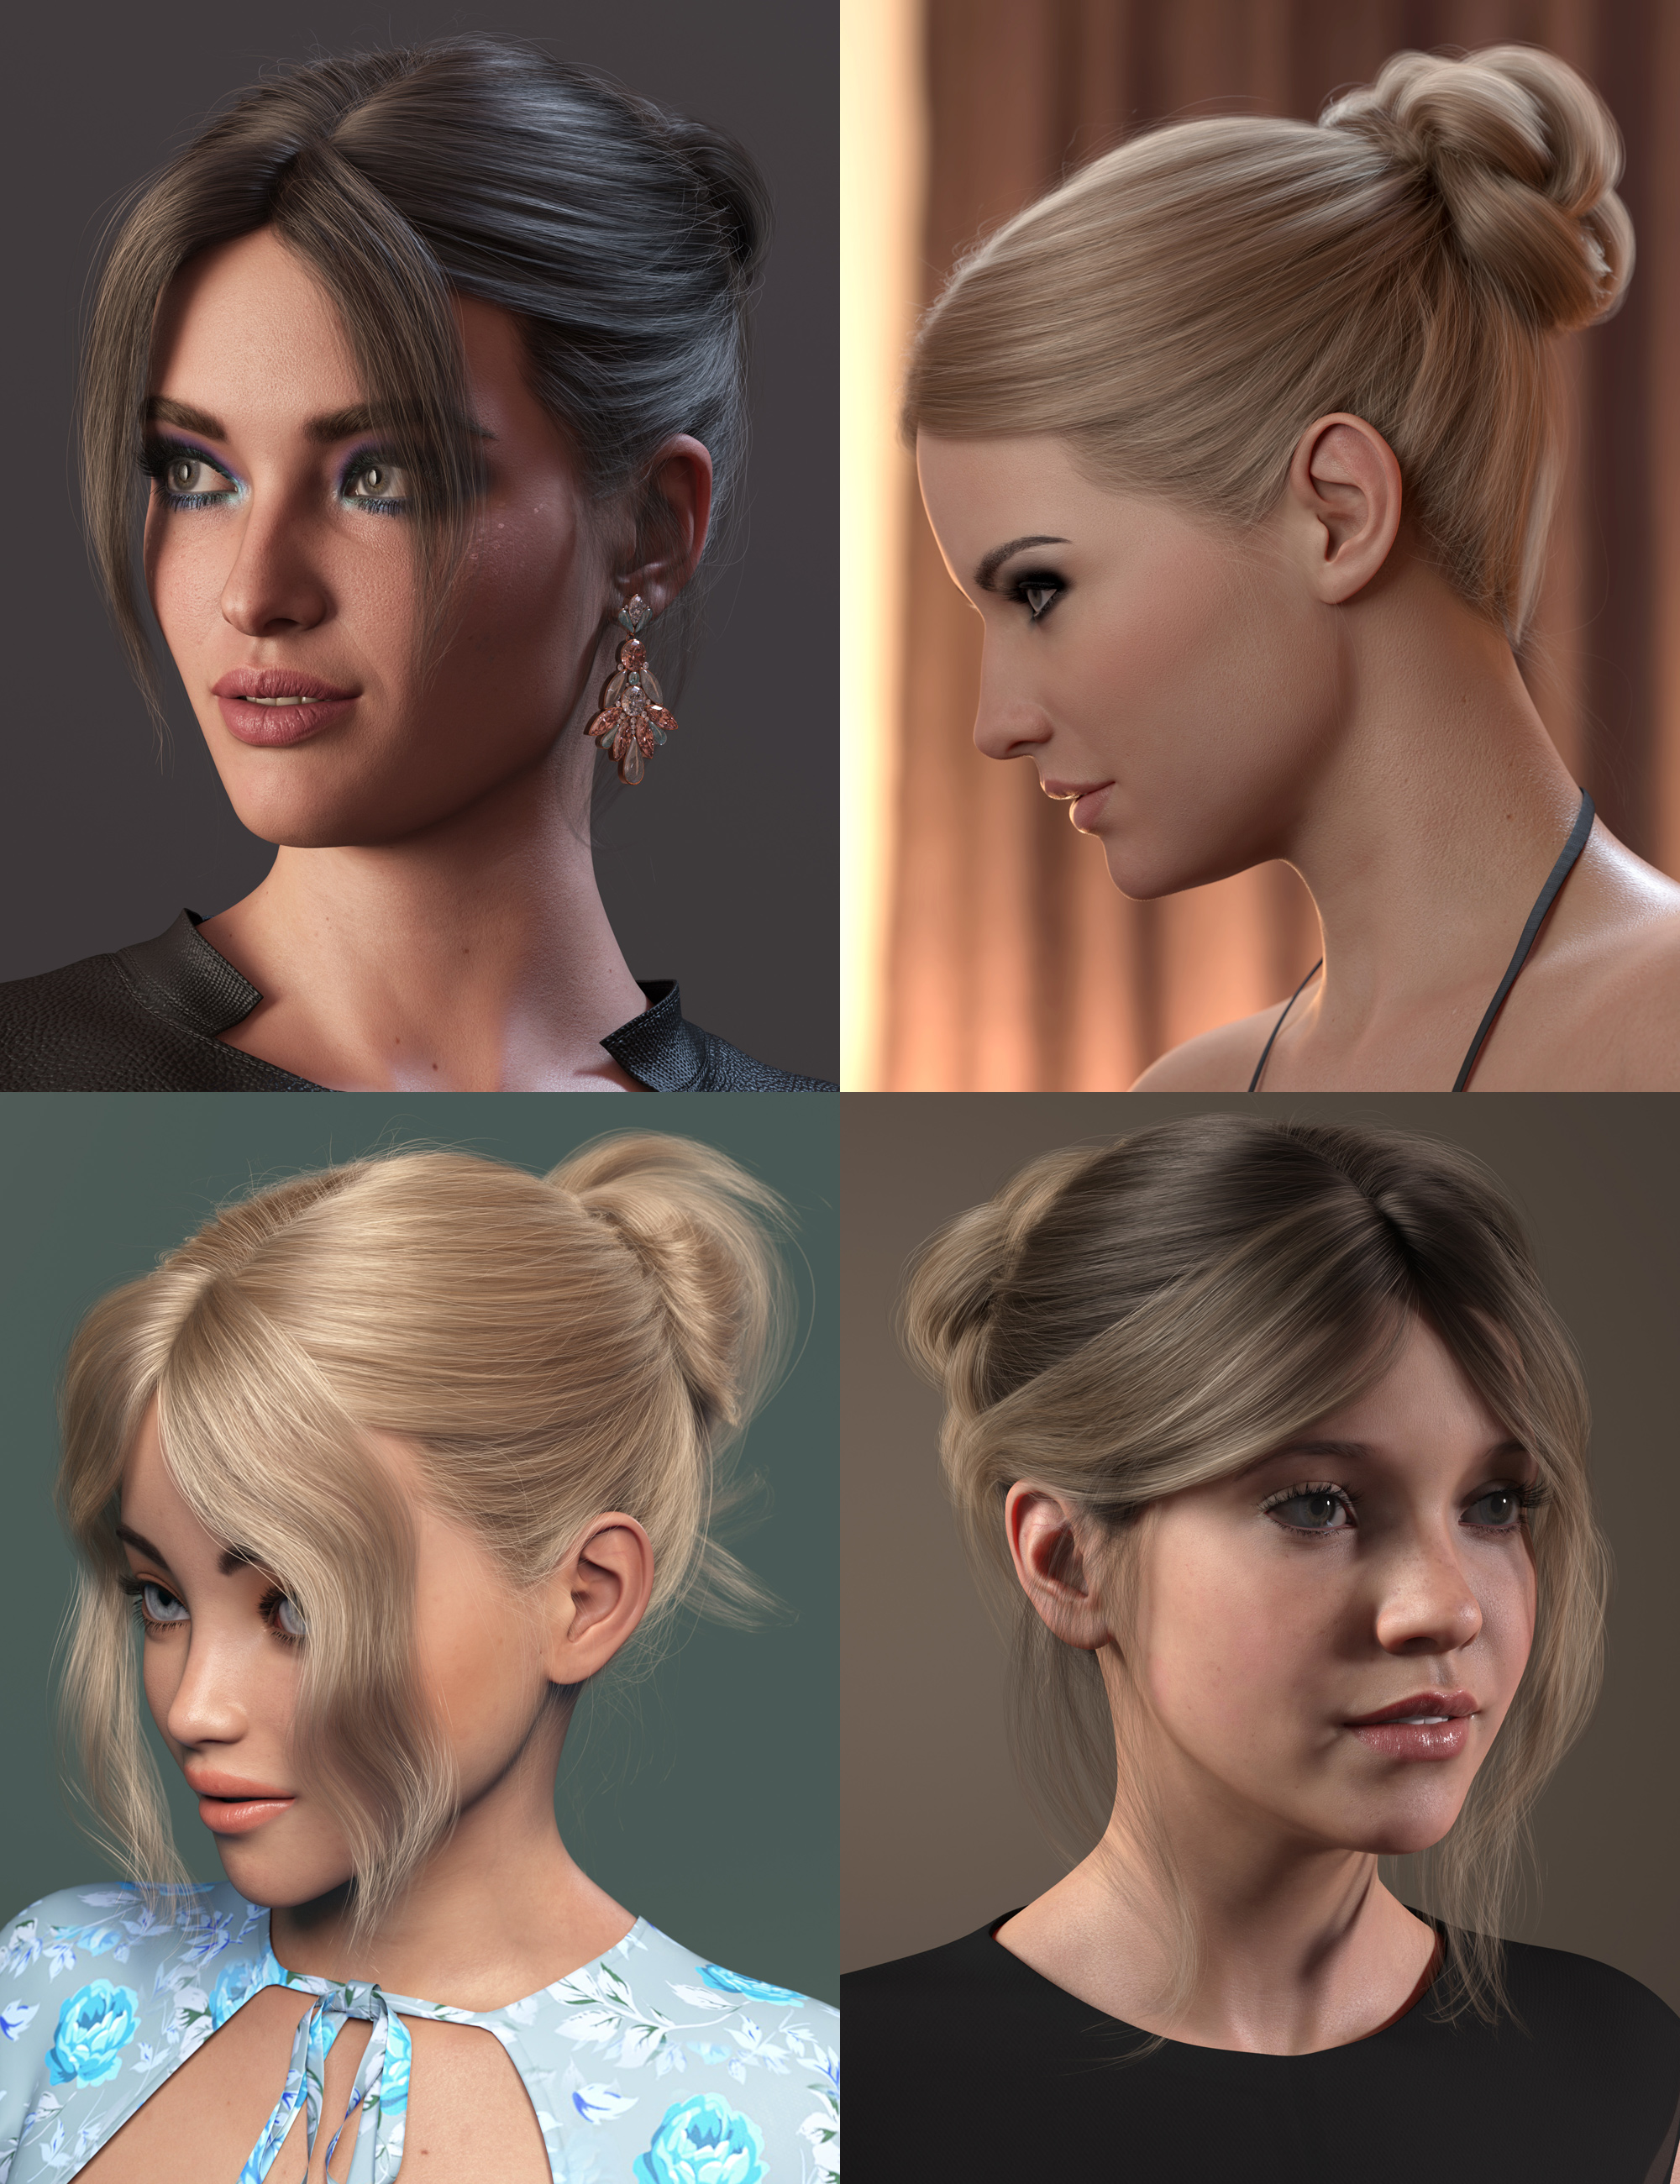 MEGA Updo 2 Hair for Genesis 8 and 8.1 Females by: outoftouch, 3D Models by Daz 3D